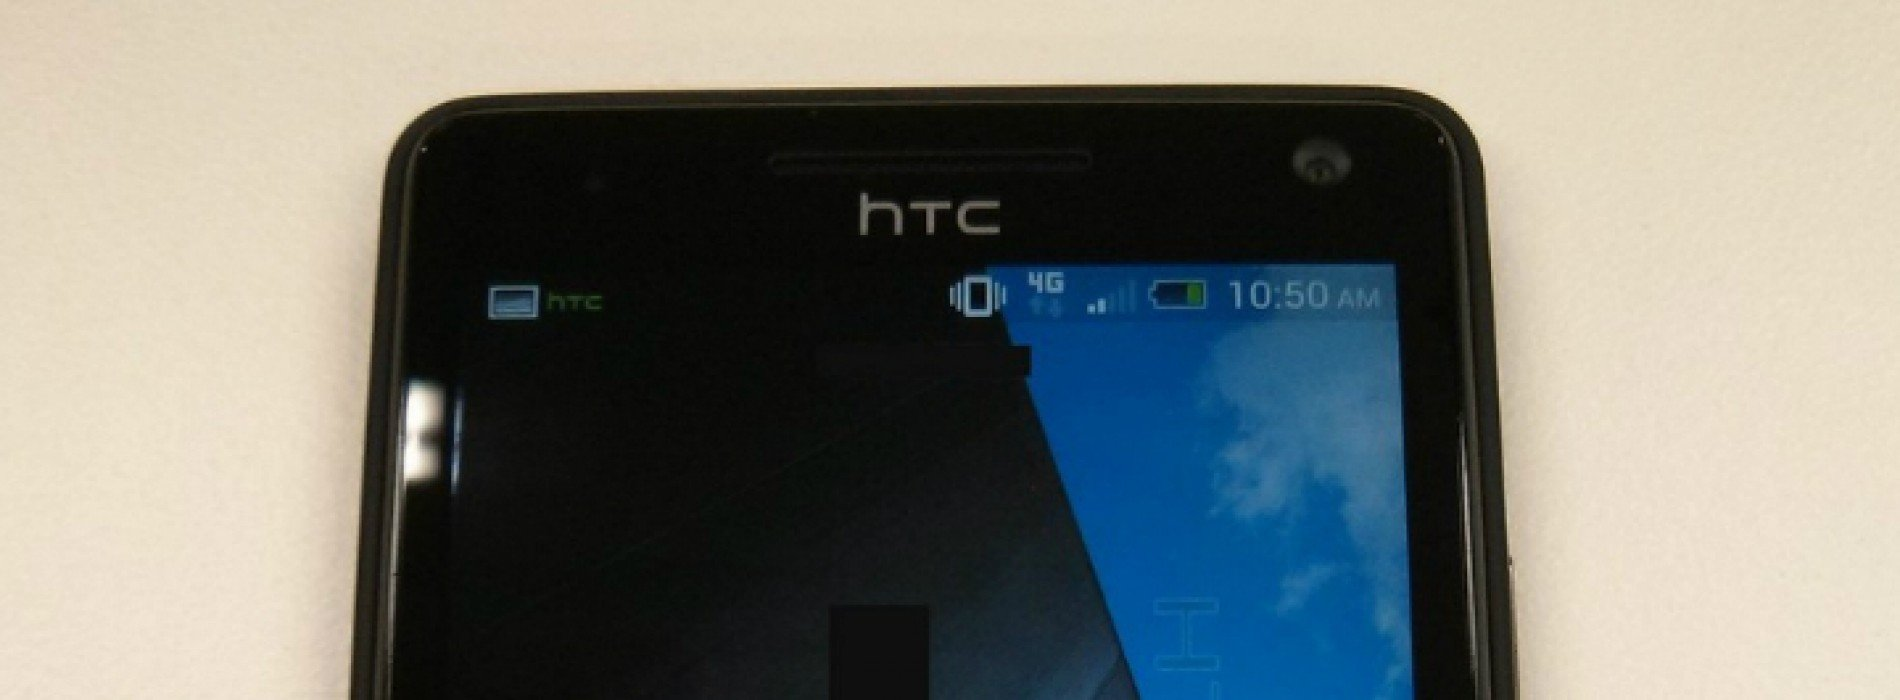 HTC M7 reportedly due March 8 with two color options